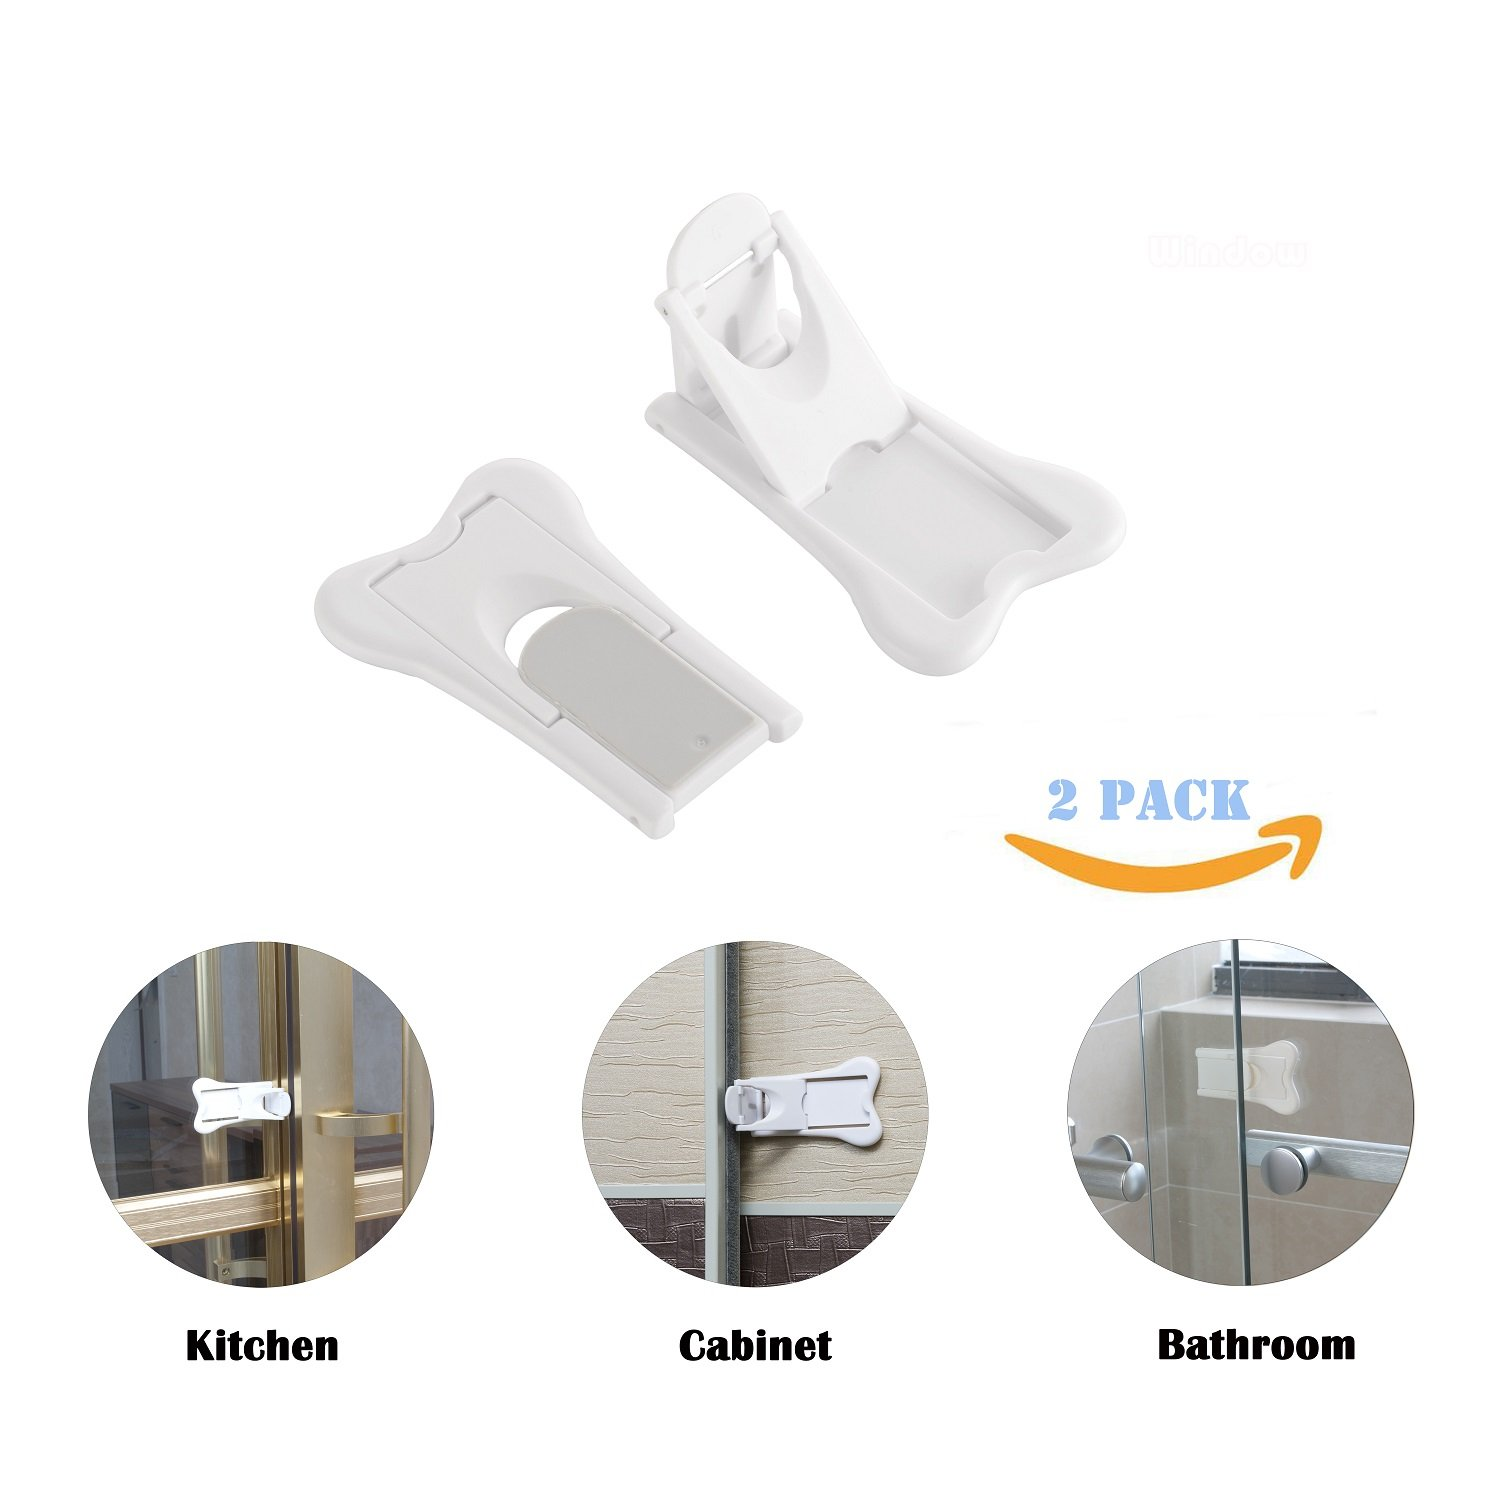 Baby Proof Lock for Patio Sliding Door Lock for Child Safety 4 Pack Shower No Tools Needed- 4Pack Window Closet Wardrobe Childproof Cupboard Kitchen Cabinet Glass Door Latch